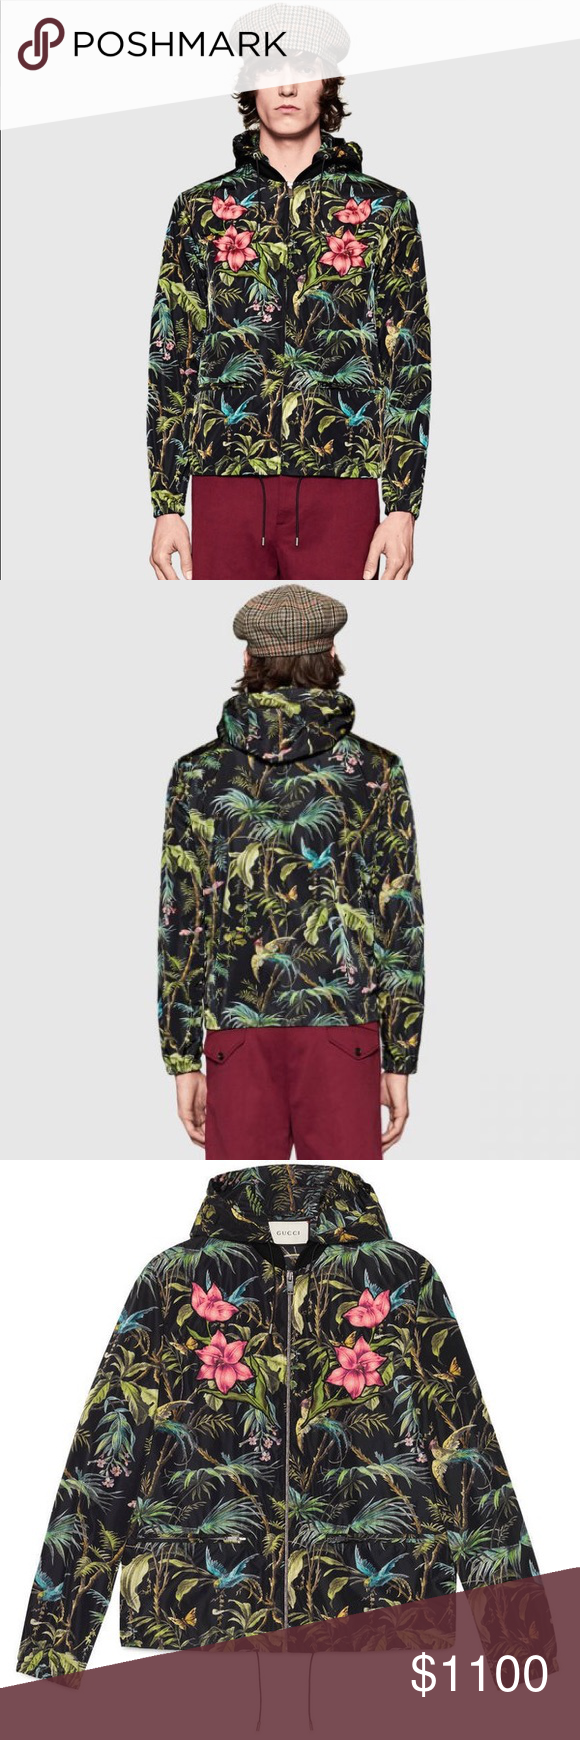 b95fc0bf6 New $1520 Gucci Black Tropical Nylon Jacket Small New with Tags Gucci  Tropical Must Have Celebrity